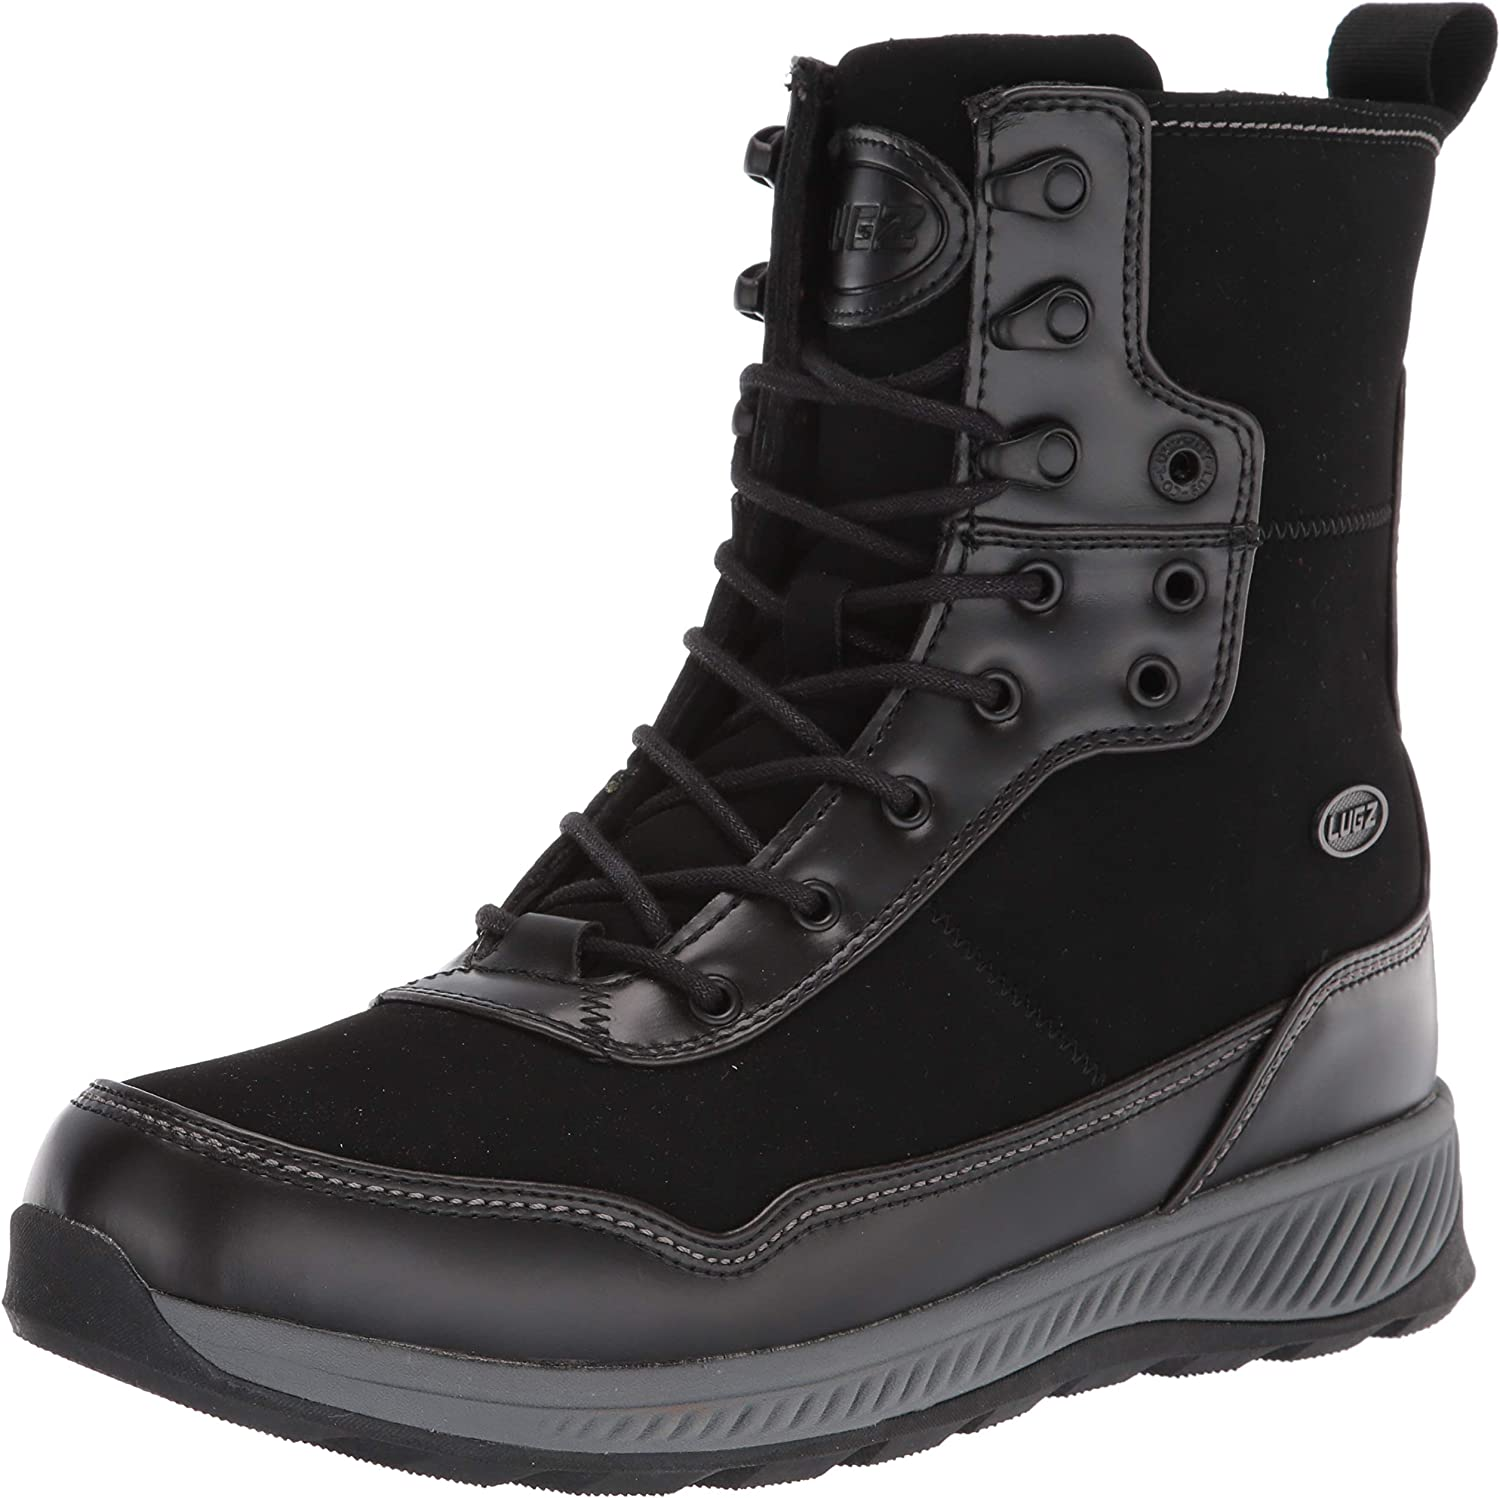 Outlet ☆ Free Max 66% OFF Shipping Lugz Men's Joel Boot Fashion